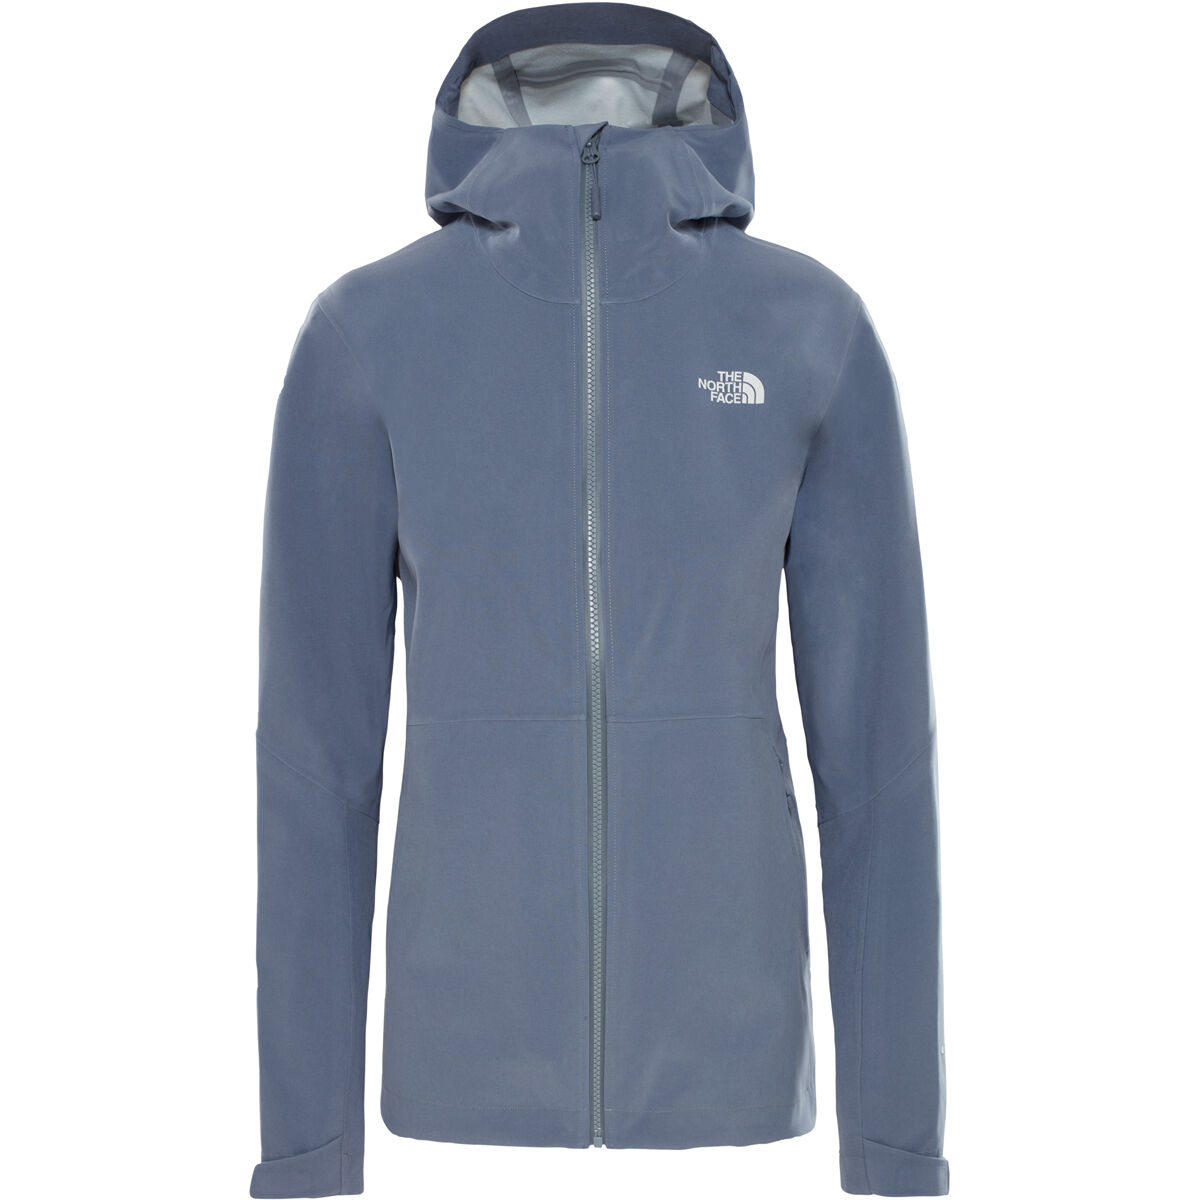 the latest 05a97 b0ada Damen Outdoor-Bekleidung Camping & Outdoor THE NORTH FACE ...